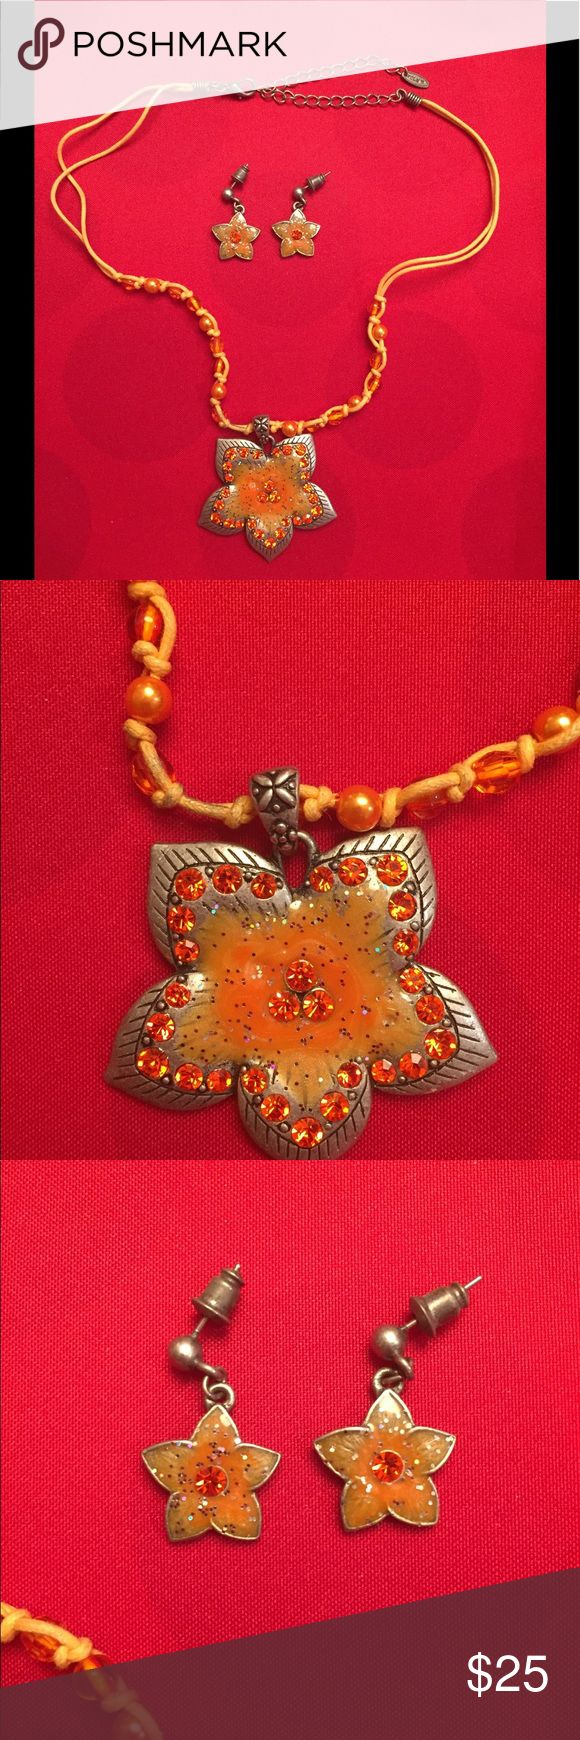 "Vintage VLCM Necklace & Earring Set Vintage VLCM Necklace & Earring Set. Beautiful Orange & Silver Flowers. Approx 16"" with an Extender. VLCM Jewelry Necklaces"